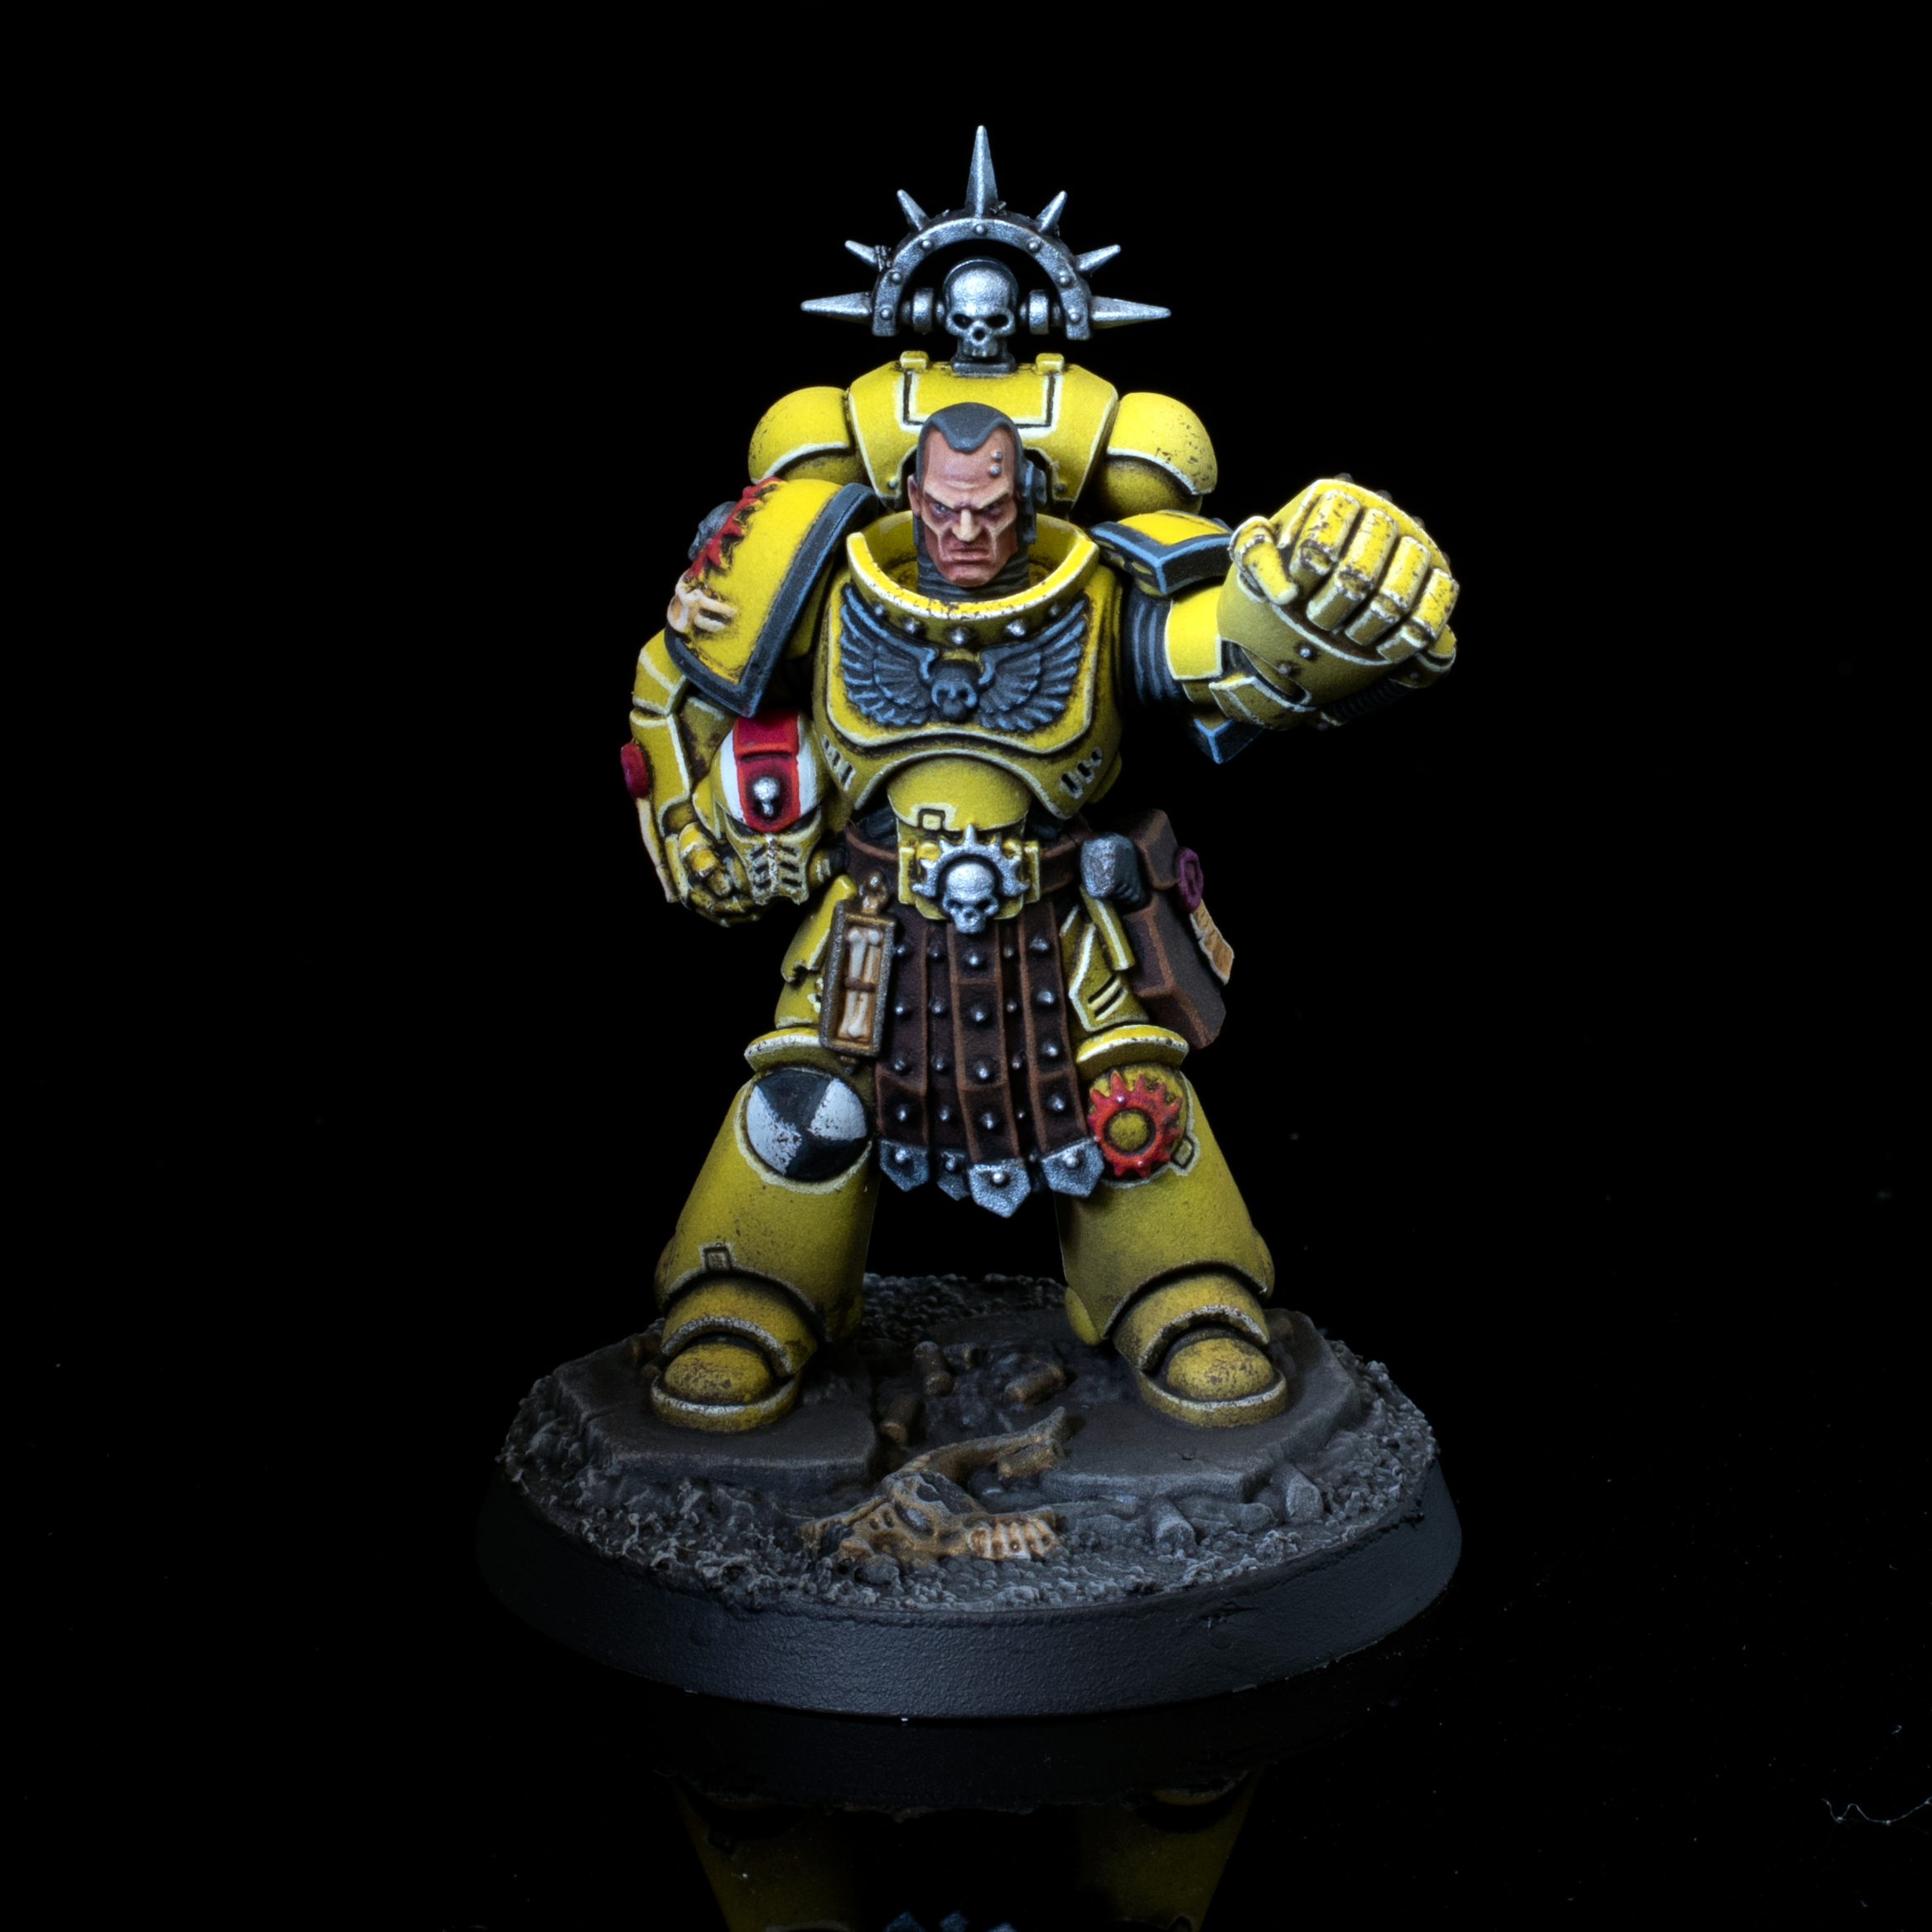 Imperial Fists 5th Company Lieutenant with Power Fist